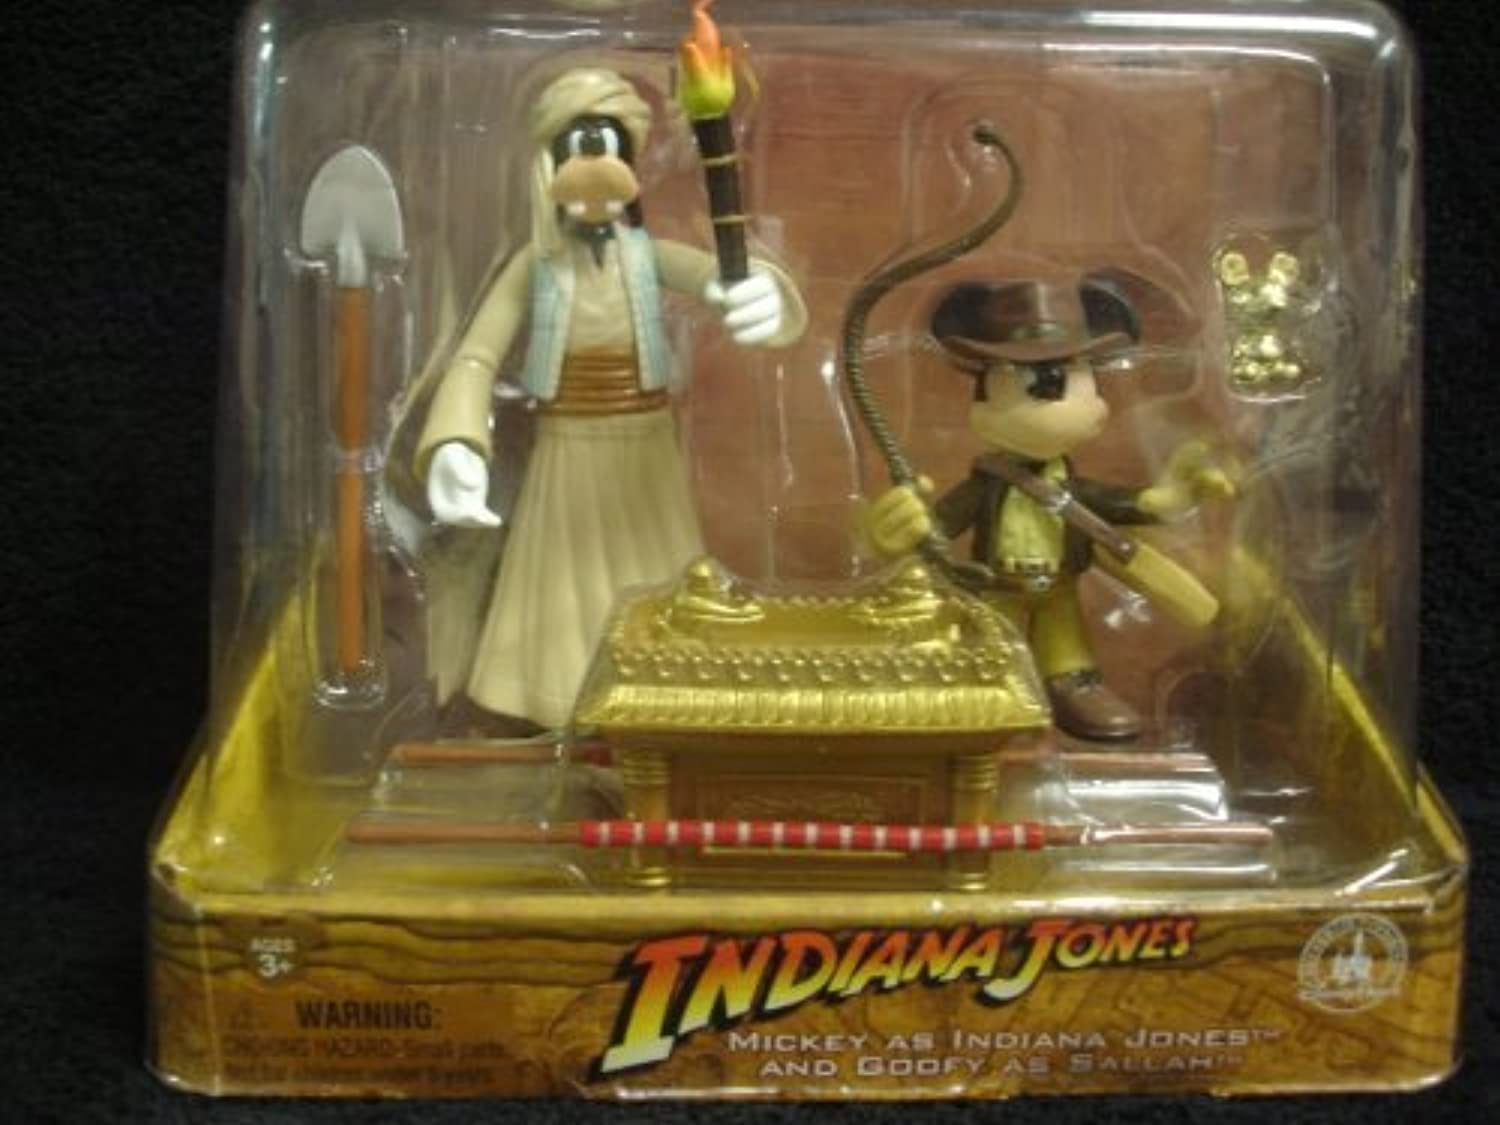 DISNEY PARKS EXCLUSIVE   Raiders of the Lost Ark - Mickey as Indiana Jones & Goofy as Sallah by Disney Parks